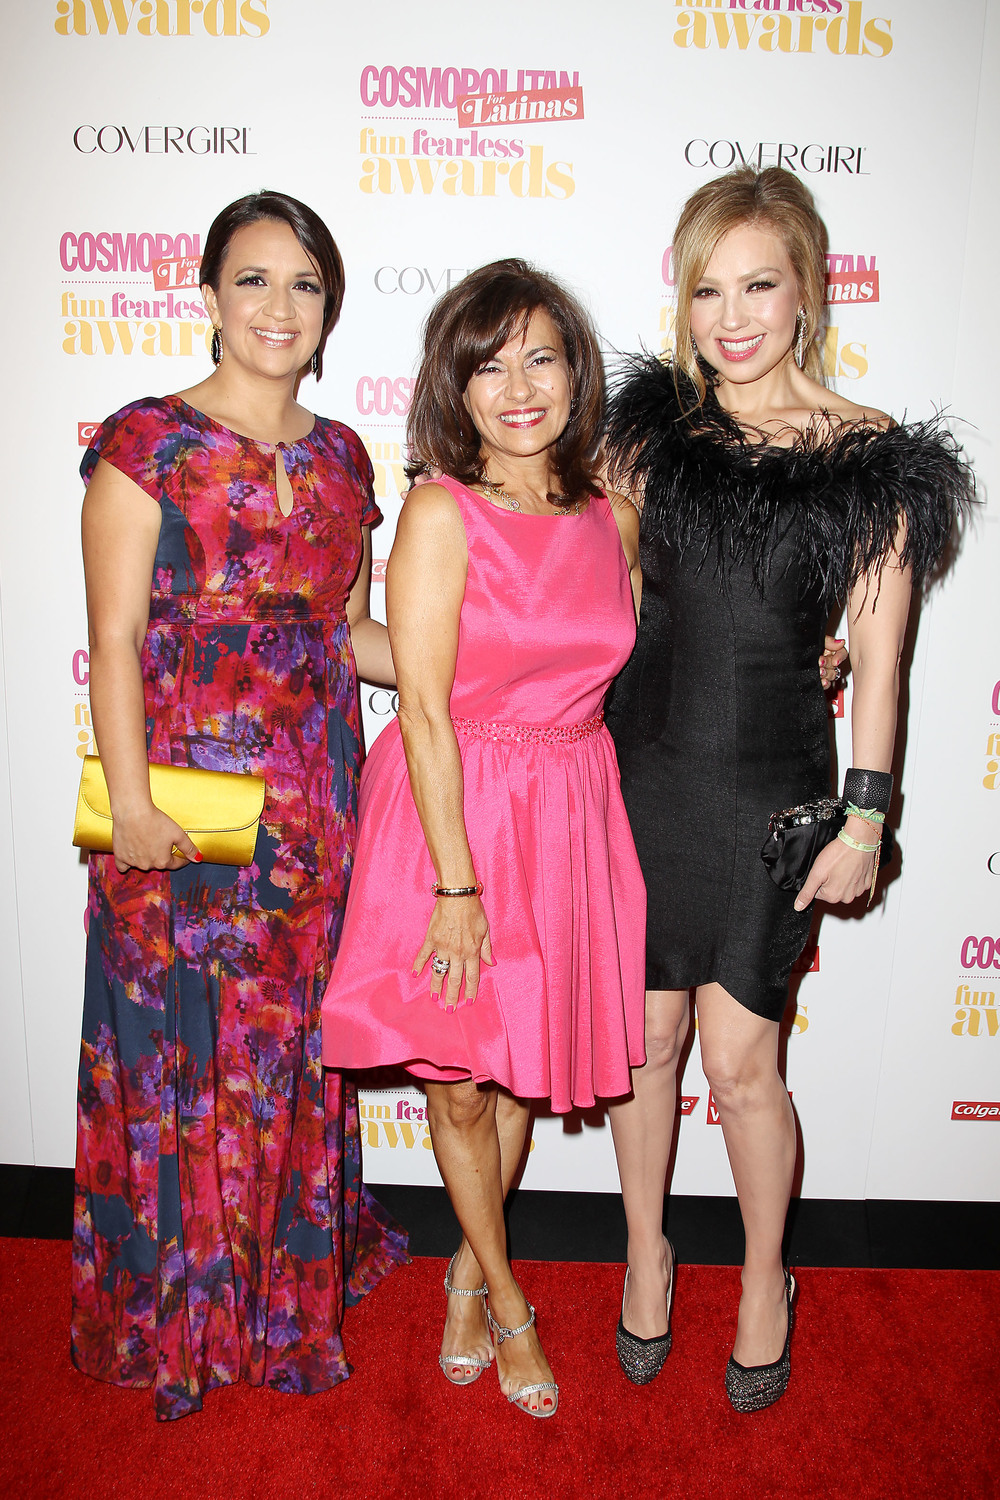 From left to right: Cosmo For Latinas Editor-in-Chief Michelle Mulligan, Publisher Donna Lagnai, Actress/Singer Thalia  Photo Credit: Adriana Stan